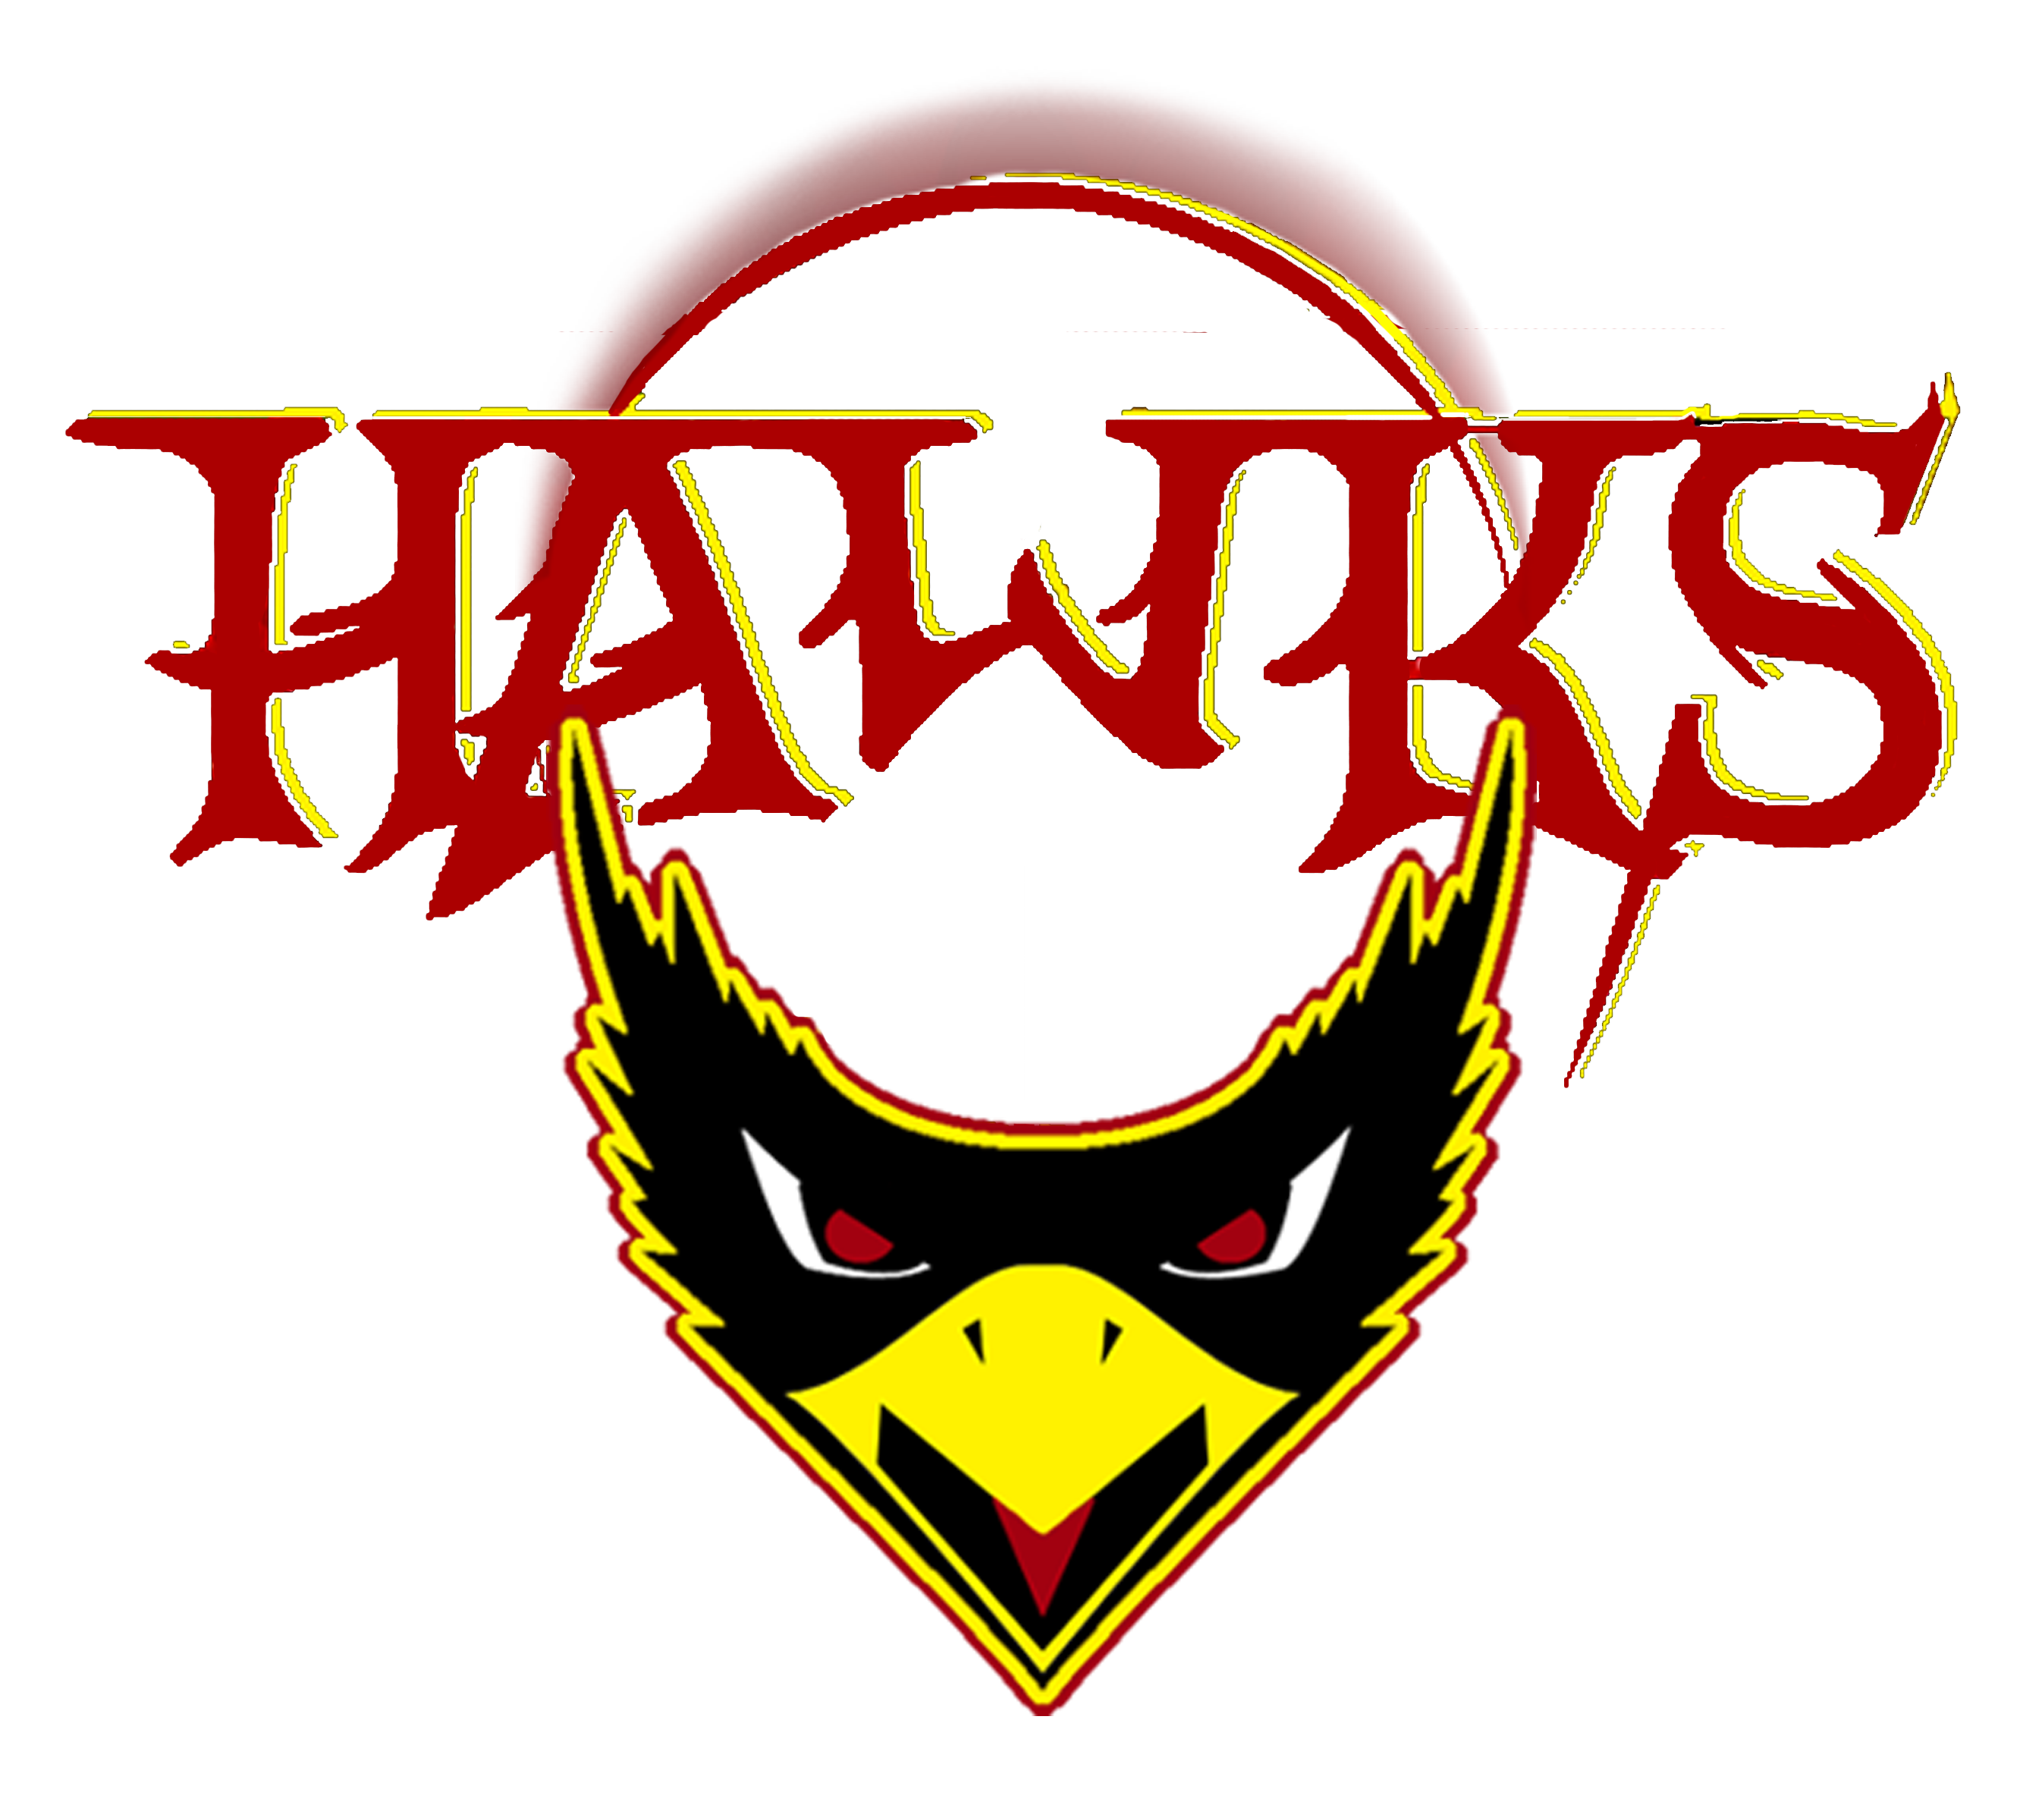 Hawk football clipart svg black and white download Bergen Hawks 2009 (BNEFF) Semi-Pro/Minor League Football Champs ... svg black and white download